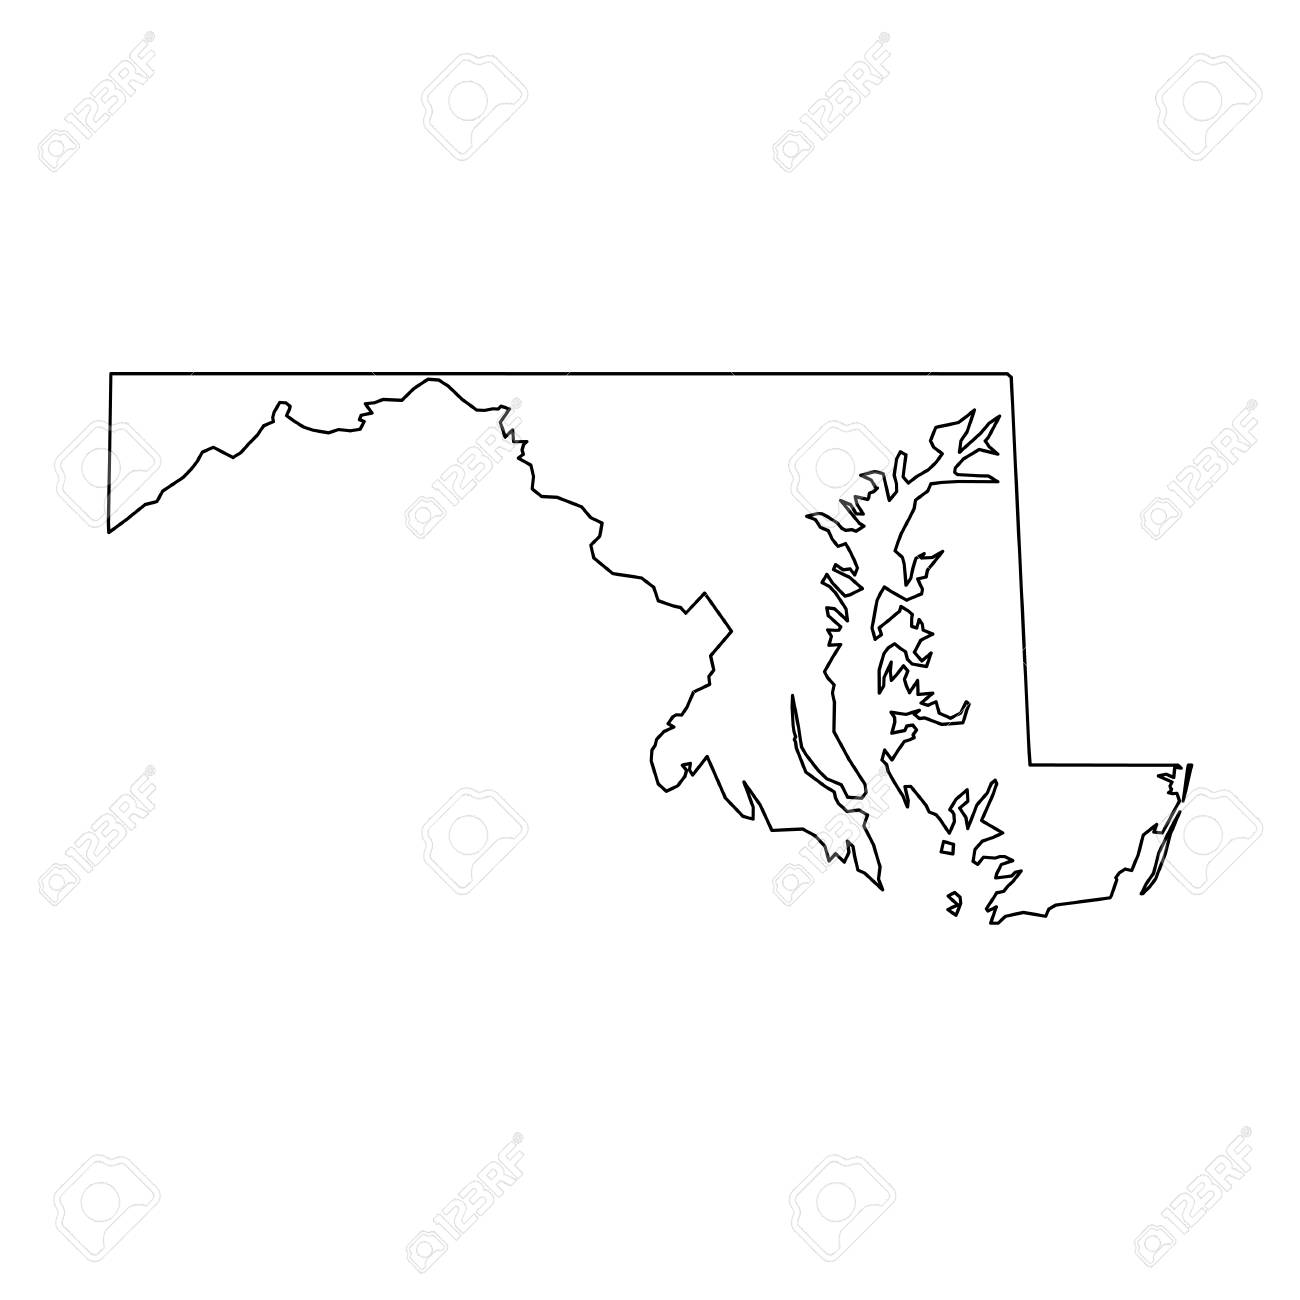 Maryland State Of Usa Solid Black Outline Map Of Country Area